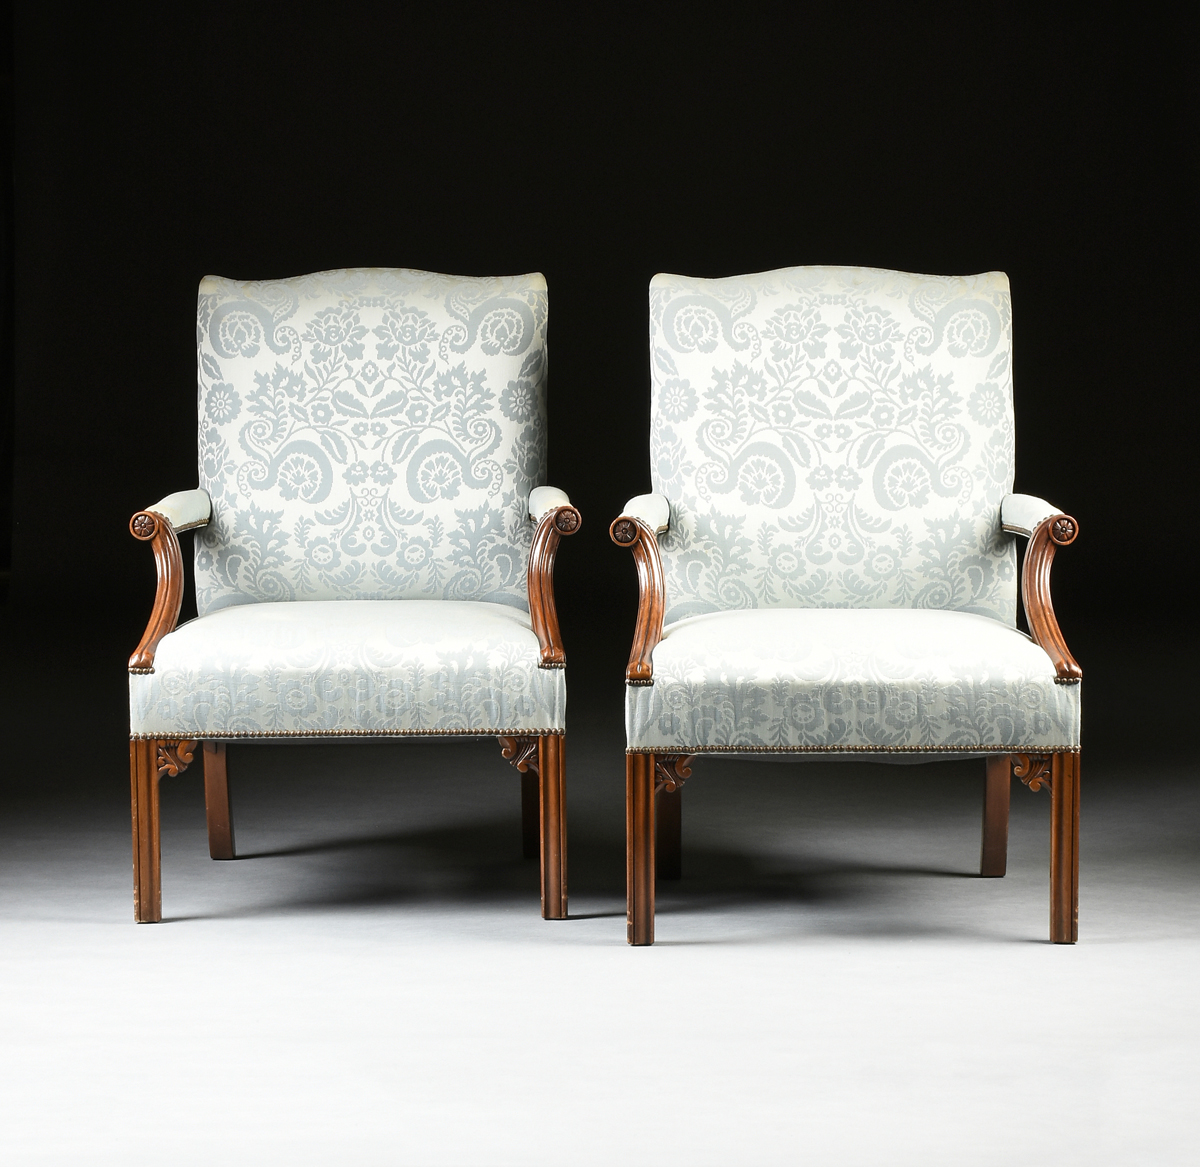 Lot 52 - A PAIR OF BAKER FURNITURE ARMCHAIRS, AMERICAN, CIRCA 1976, in the Chippendale style, the arched